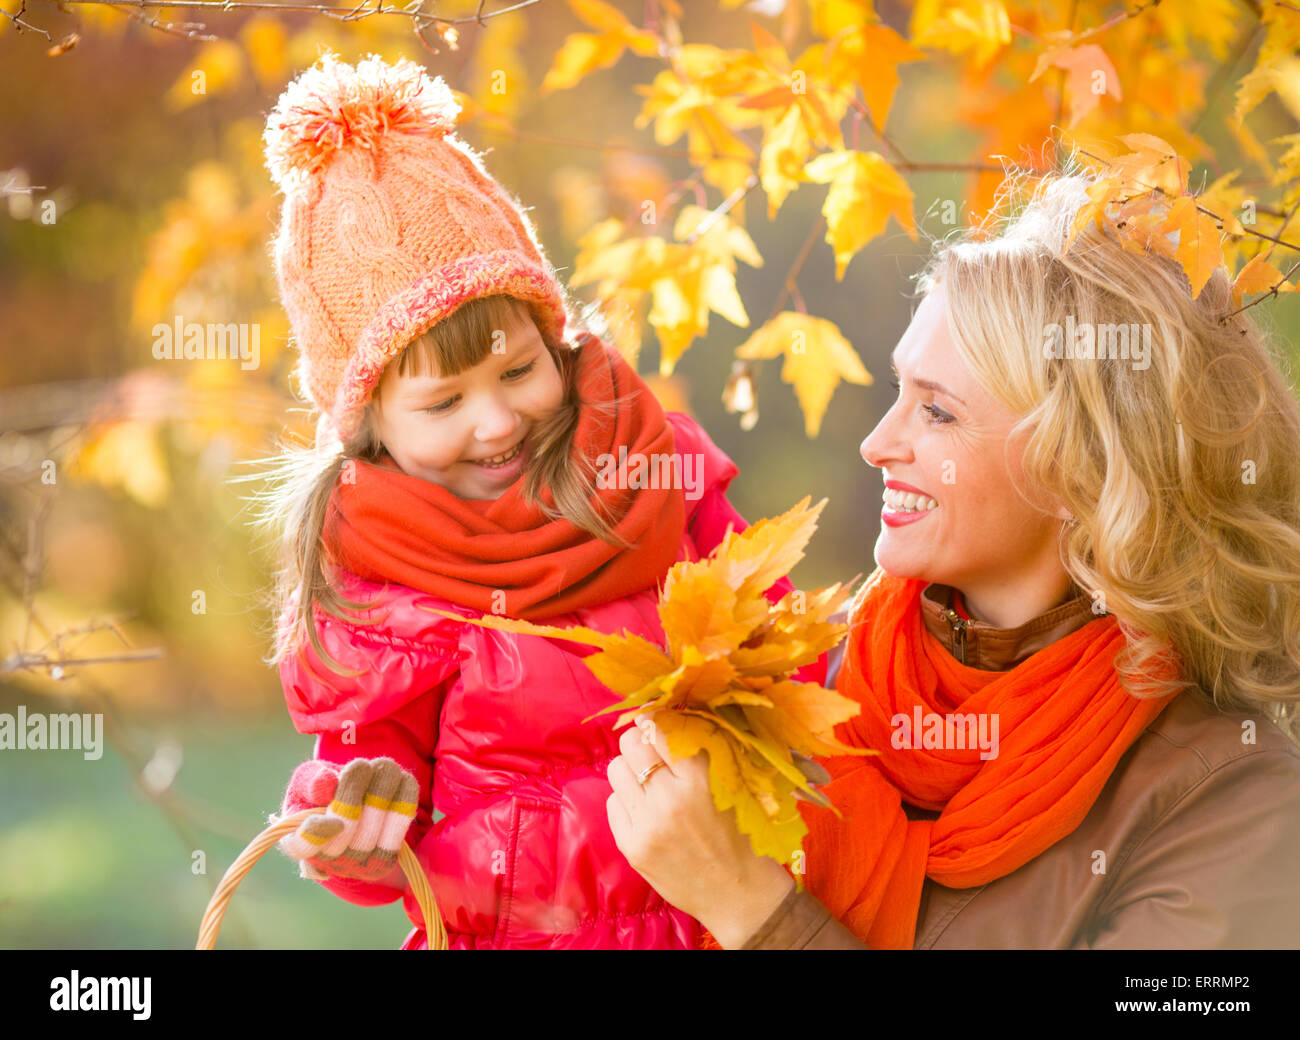 Smiling mother and kid outdoor with autumn yellow leaves - Stock Image